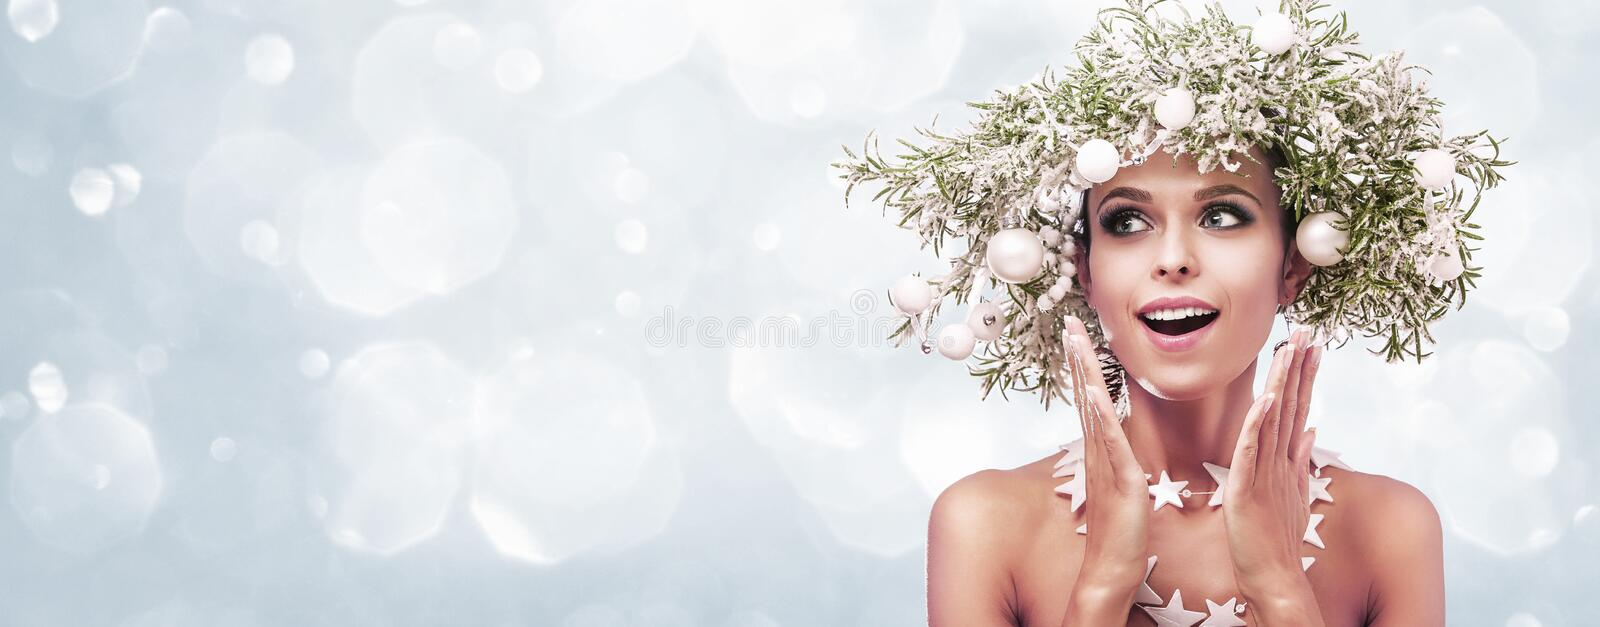 Beauty Fashion Model Girl with Fir Branches Decoration. Winter Hairstyle and Make Up royalty free stock photography